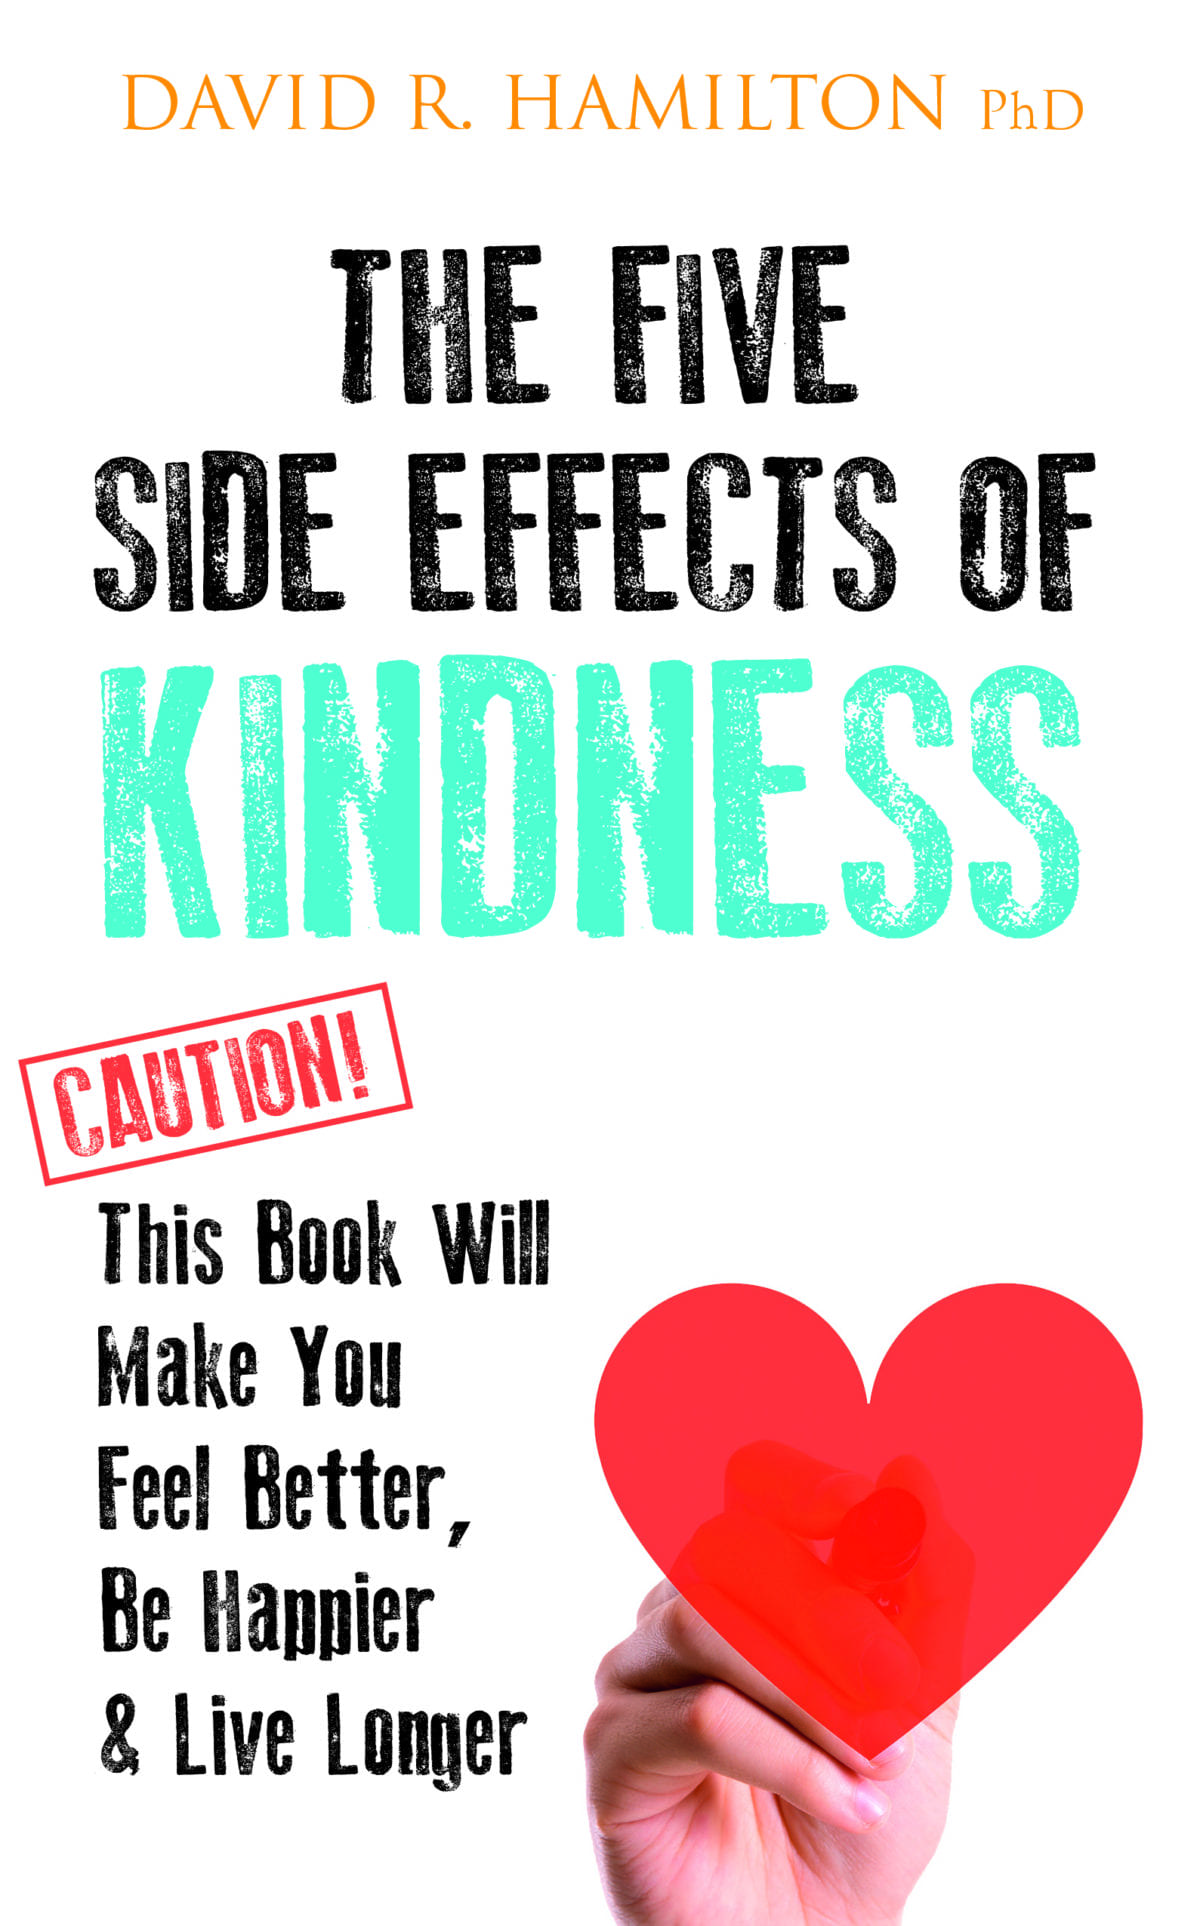 The 5 side effects of kindness - jacket hi res